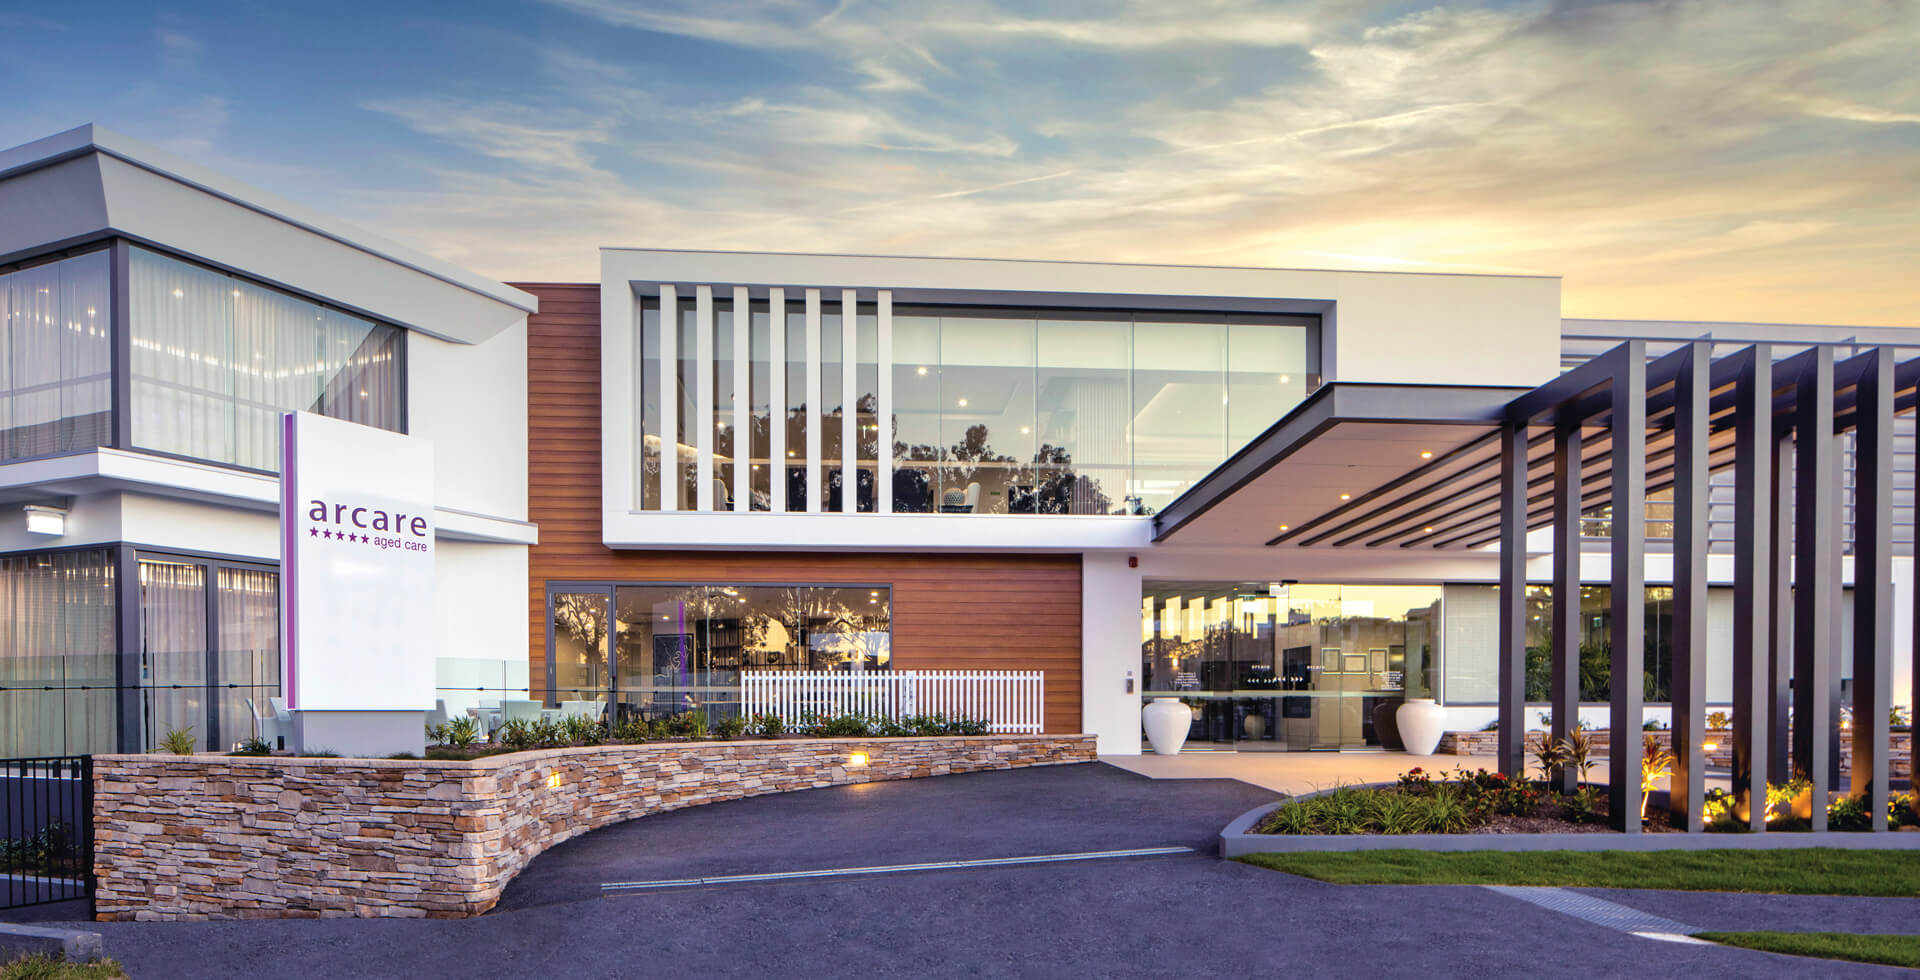 Arcare Seven Hills Aged Care